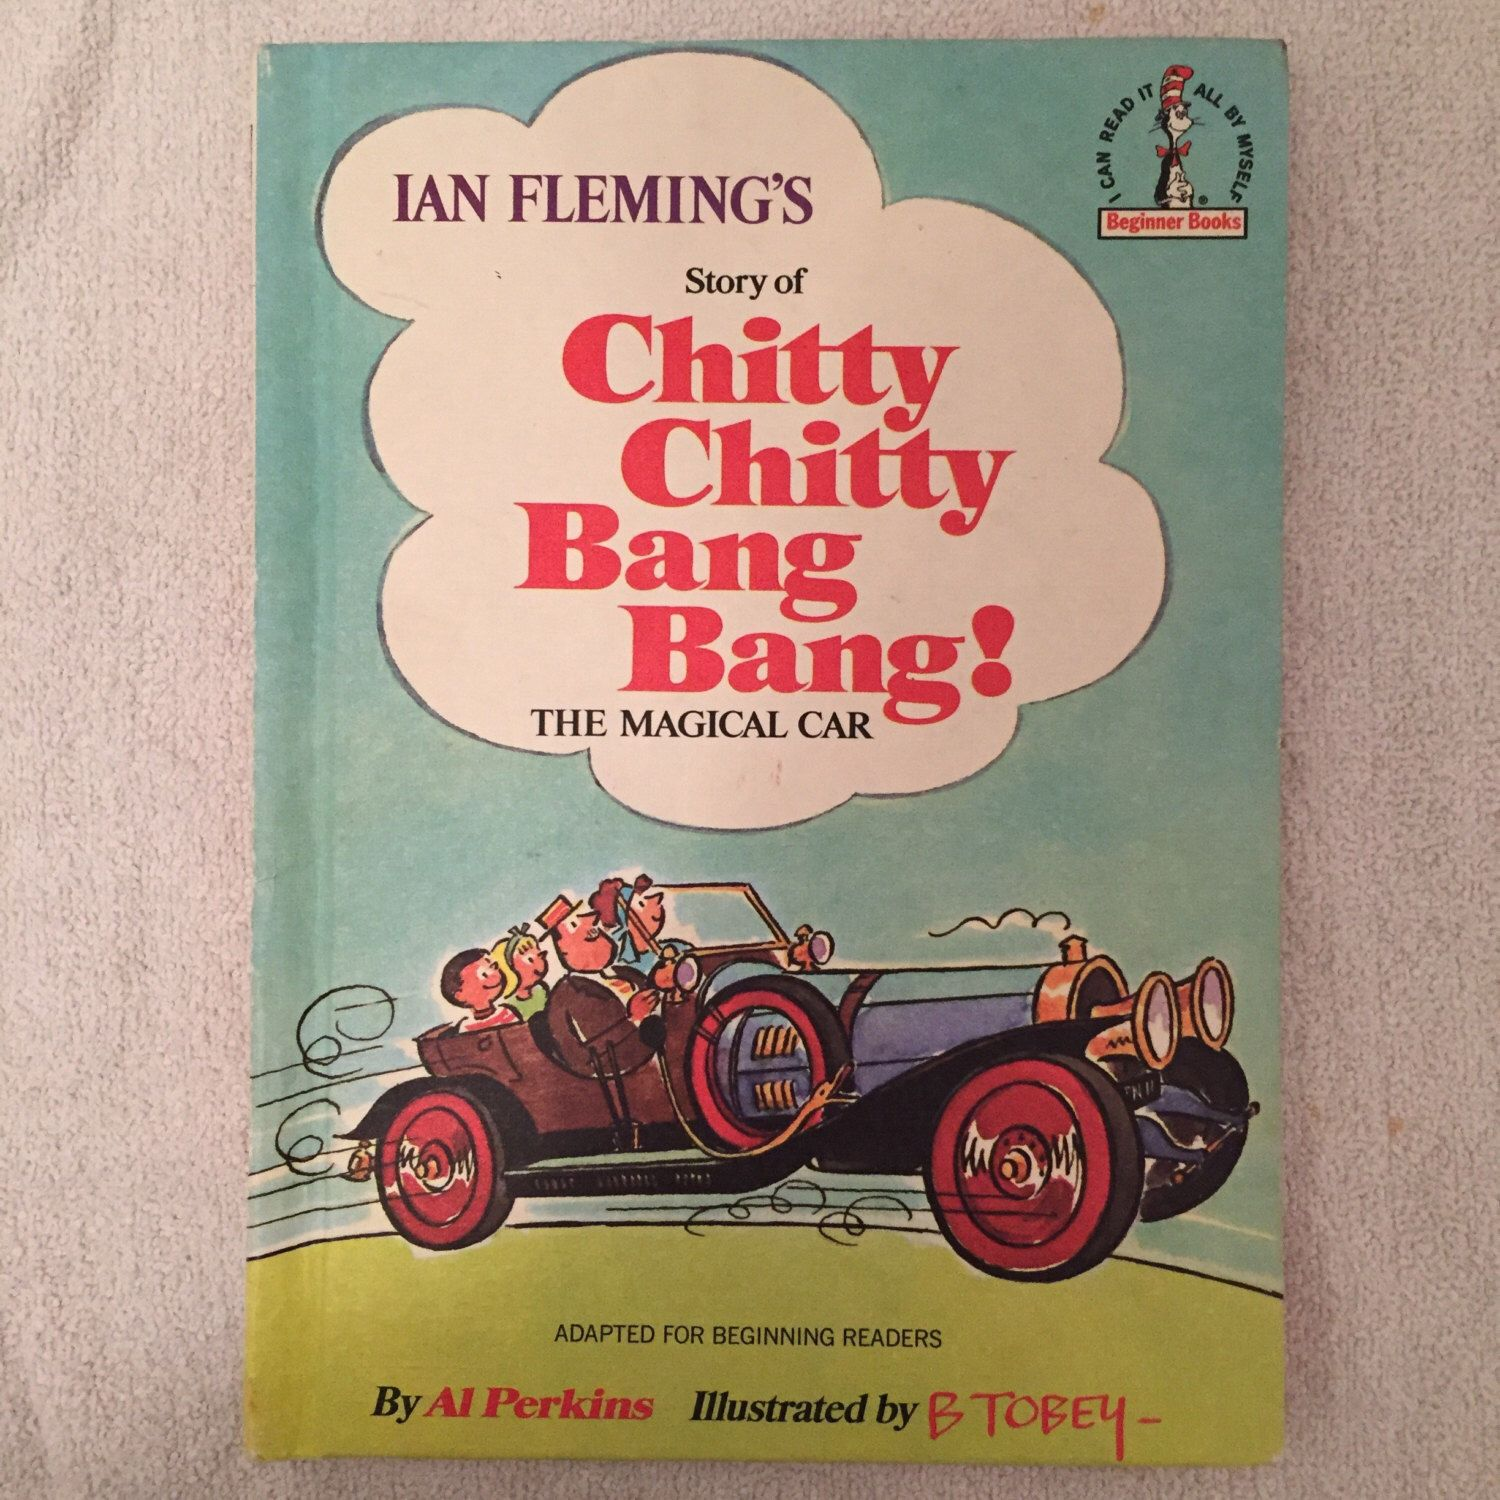 Vintage Chitty Chitty Bang Bang! The Magical Car Book | Bang bang ...